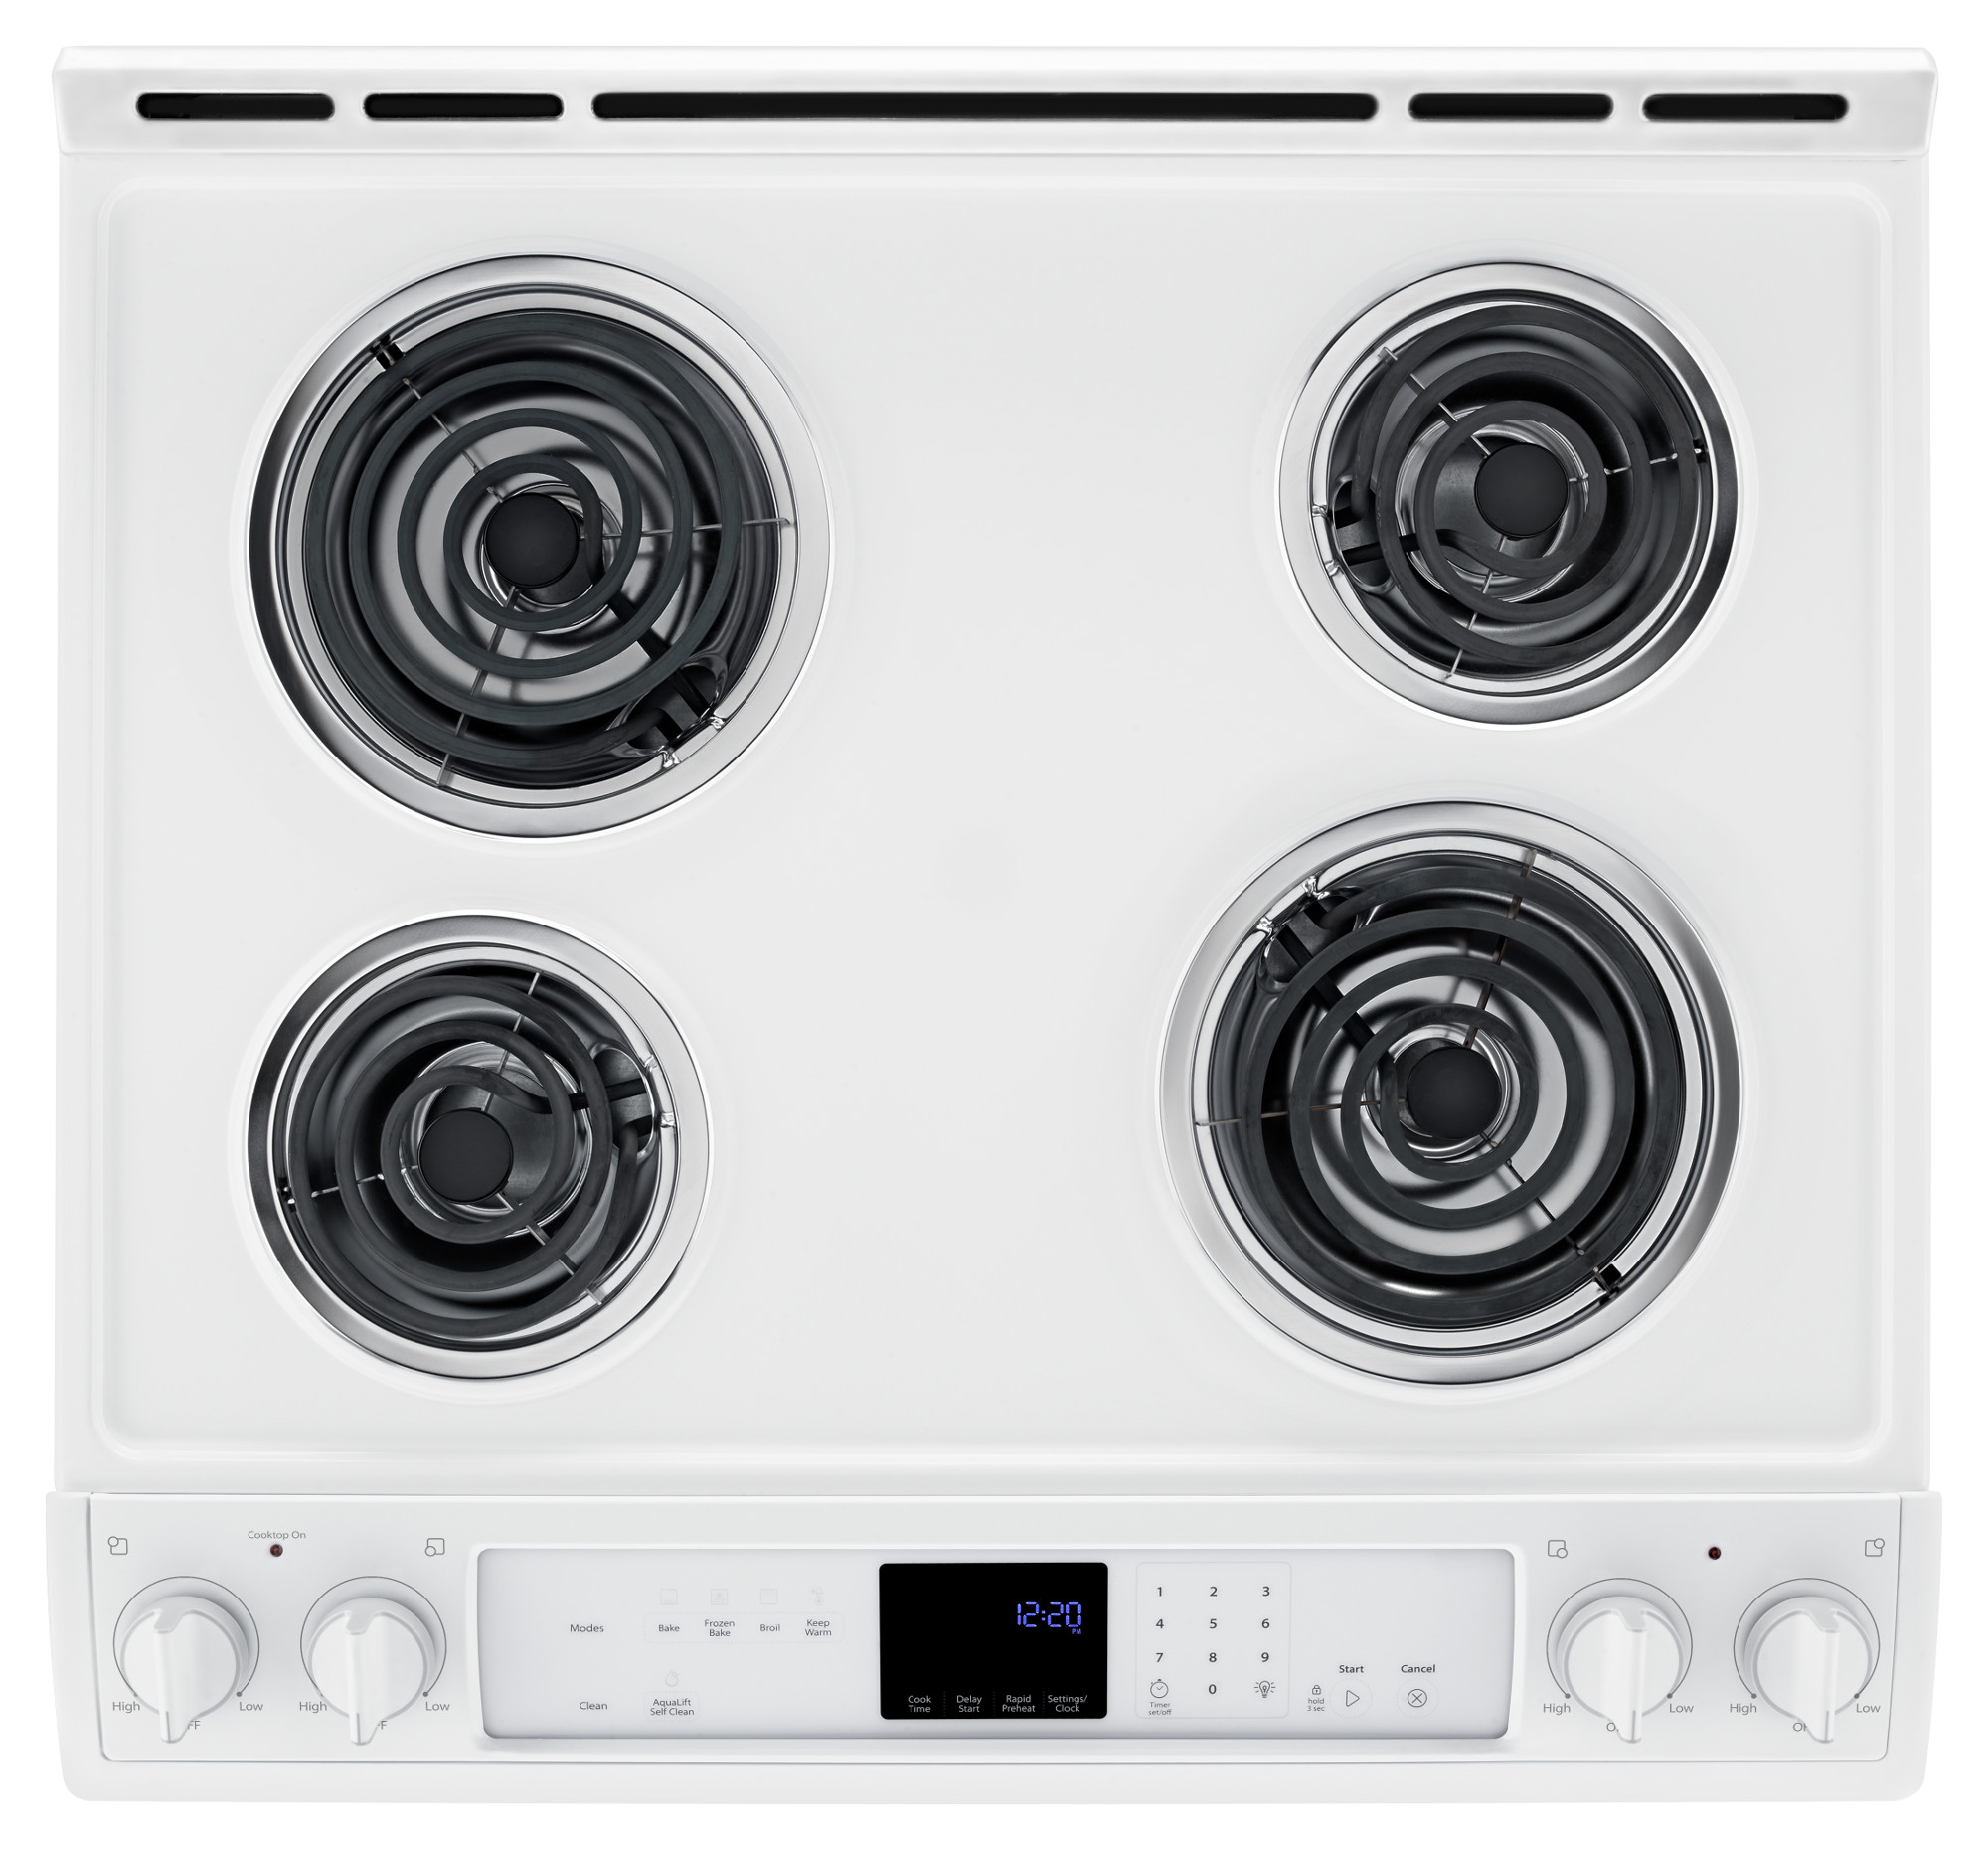 Whirlpool WEC530H0DW 6.2 cu. ft. Slide-In Electric Range w/Front Controls - White